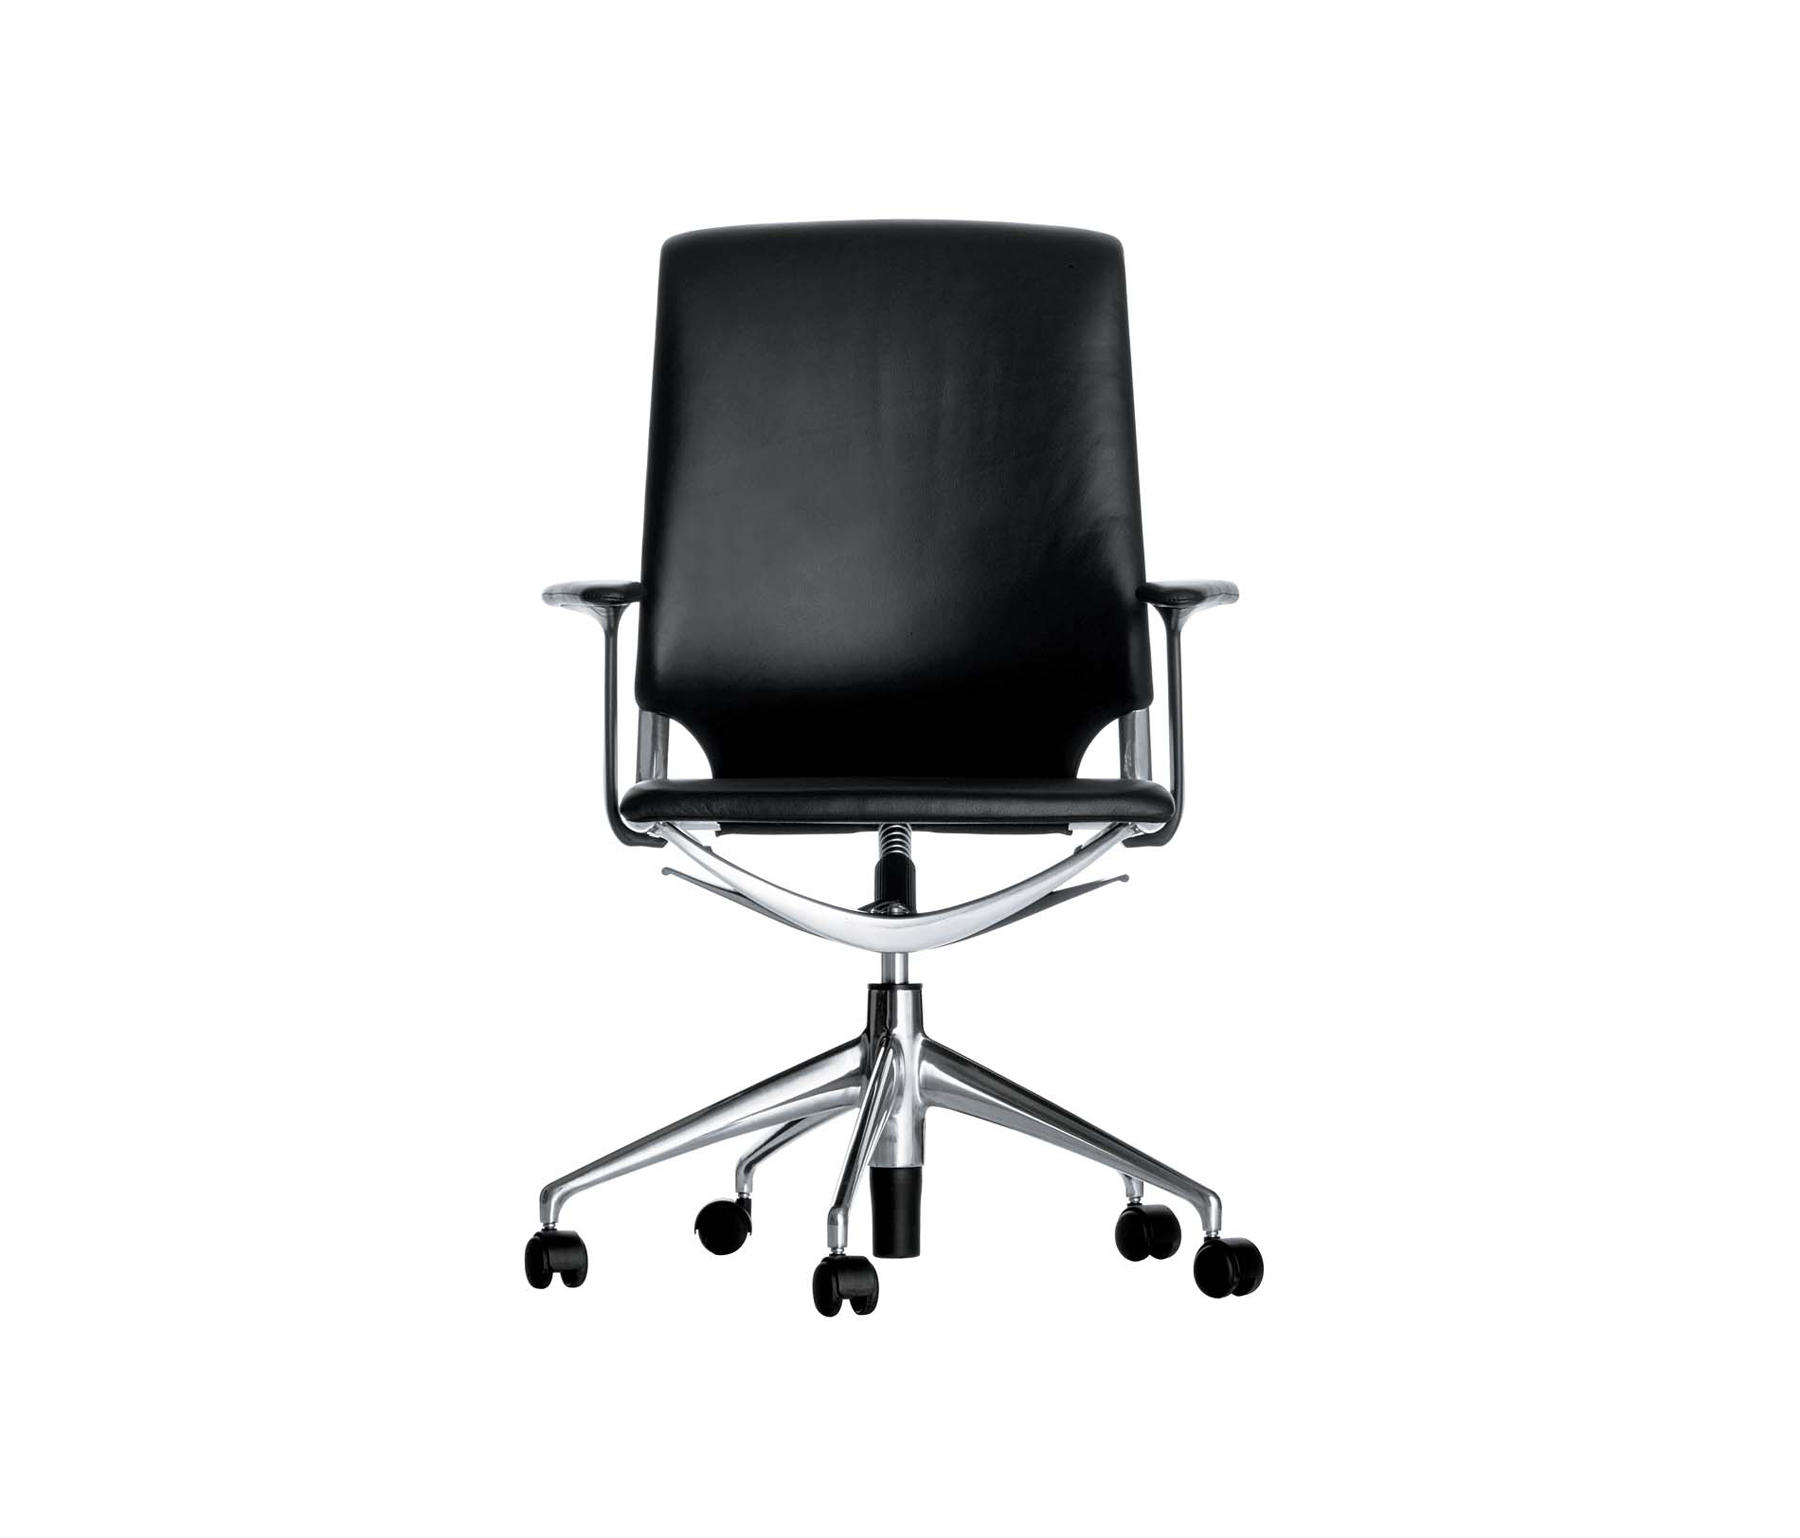 meda chair task chairs from vitra architonic. Black Bedroom Furniture Sets. Home Design Ideas